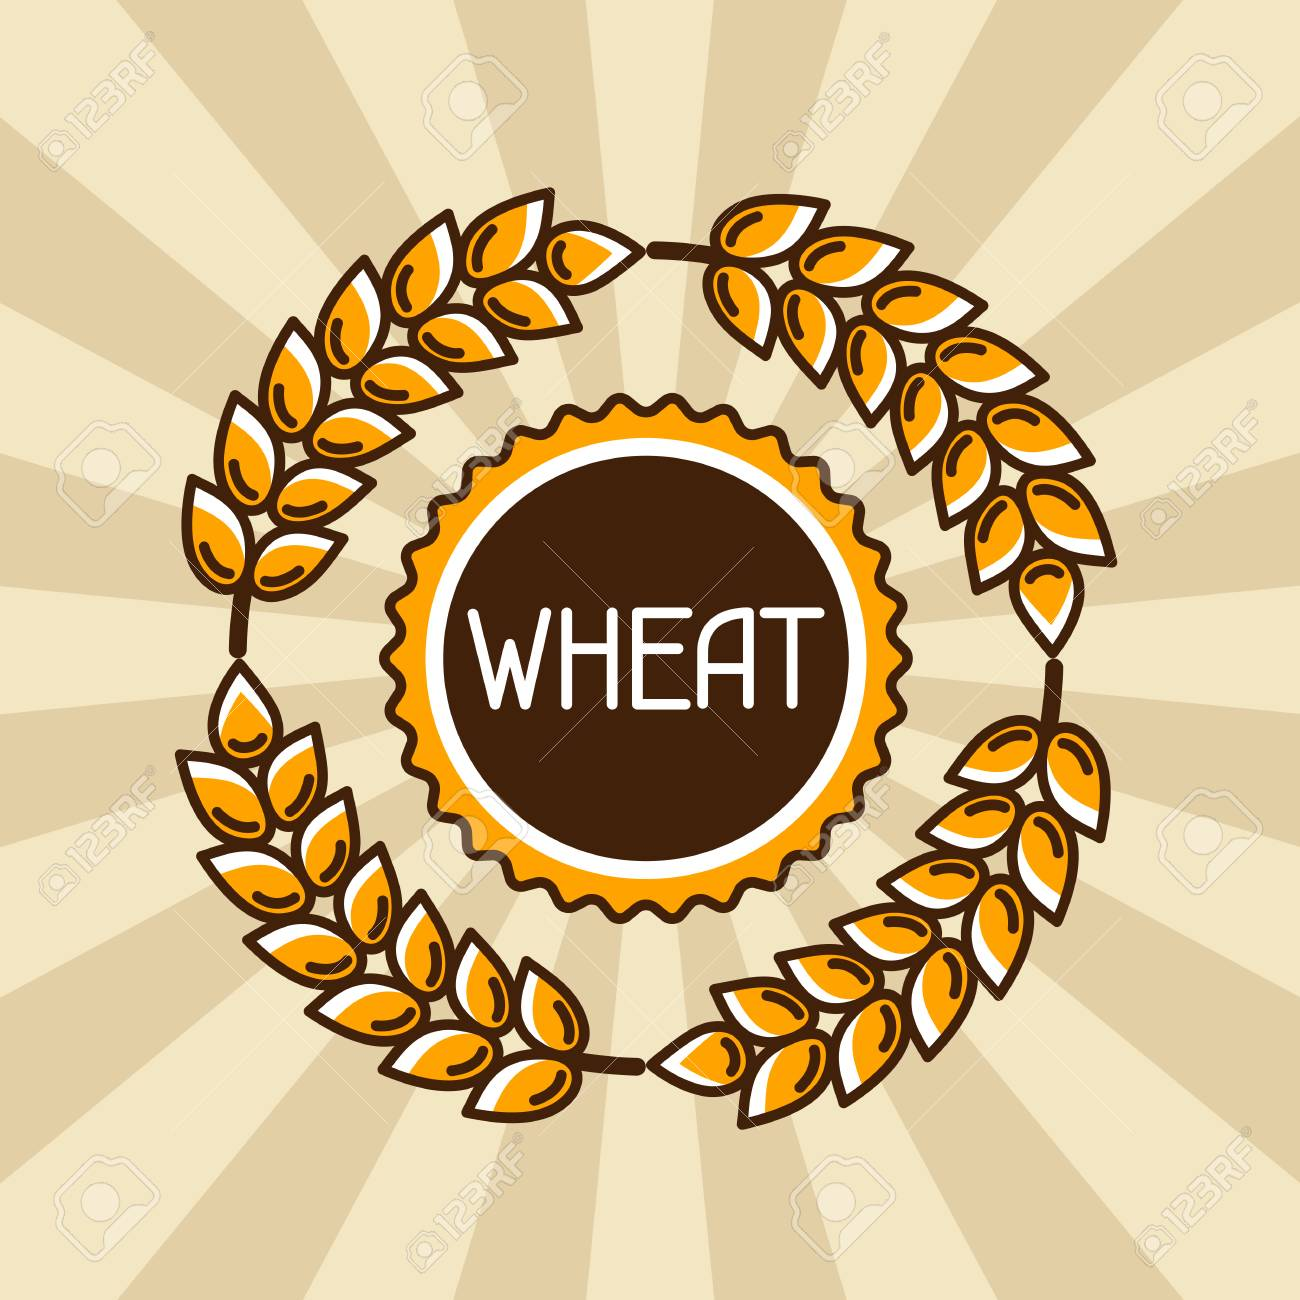 Emblem with wheat. Agricultural image natural golden ears of barley or rye. Objects for decoration bread packaging, beer labels. - 56391950